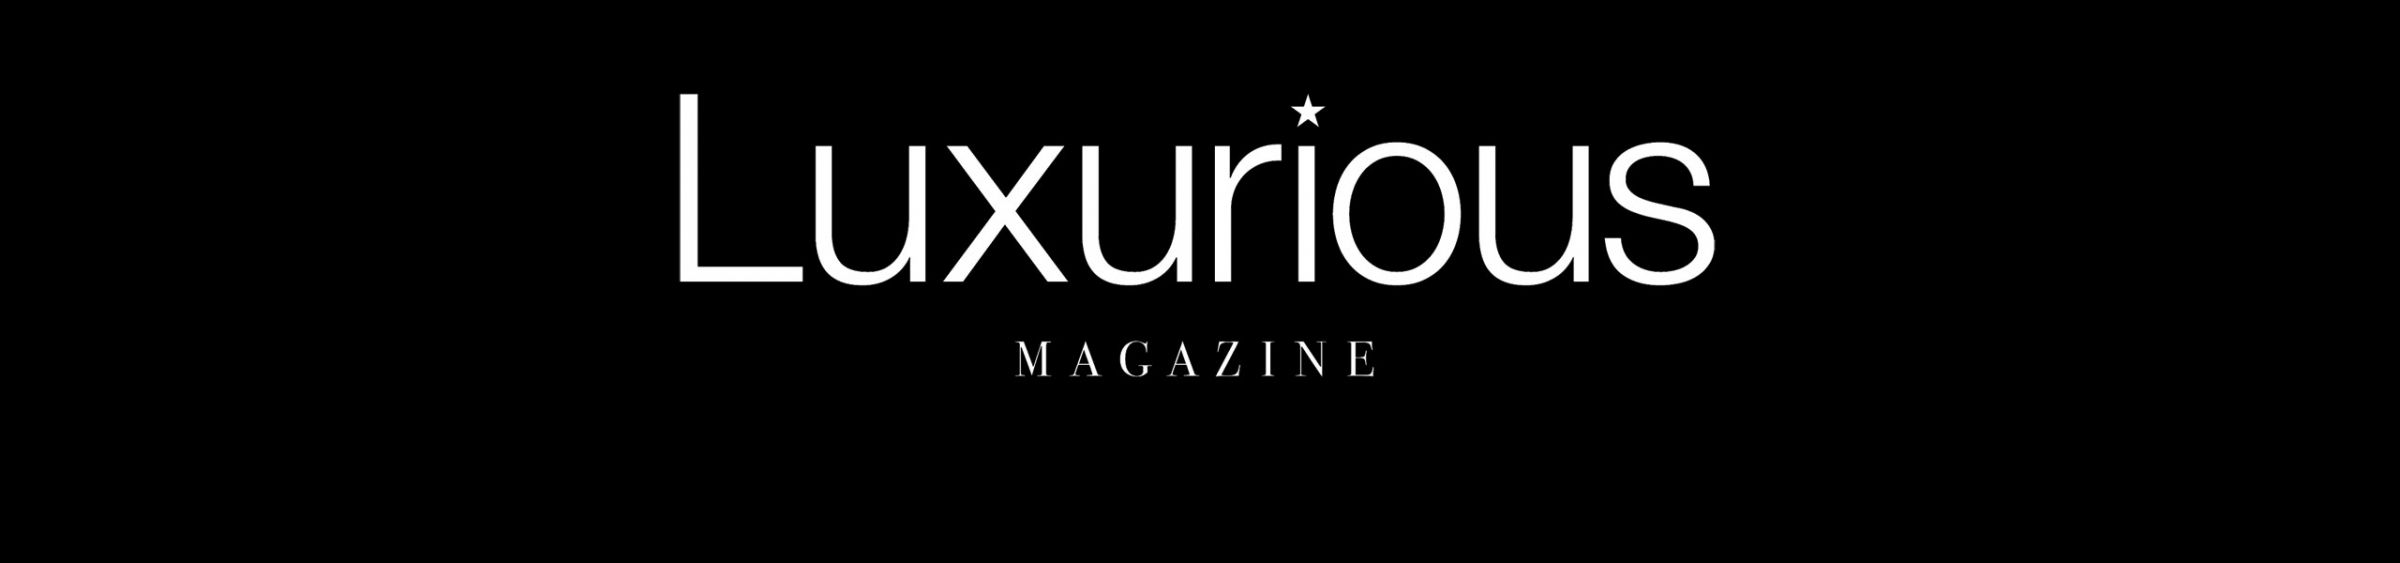 What Are The Luxury Brands Saying About Luxurious Magazine On Twitter? 4